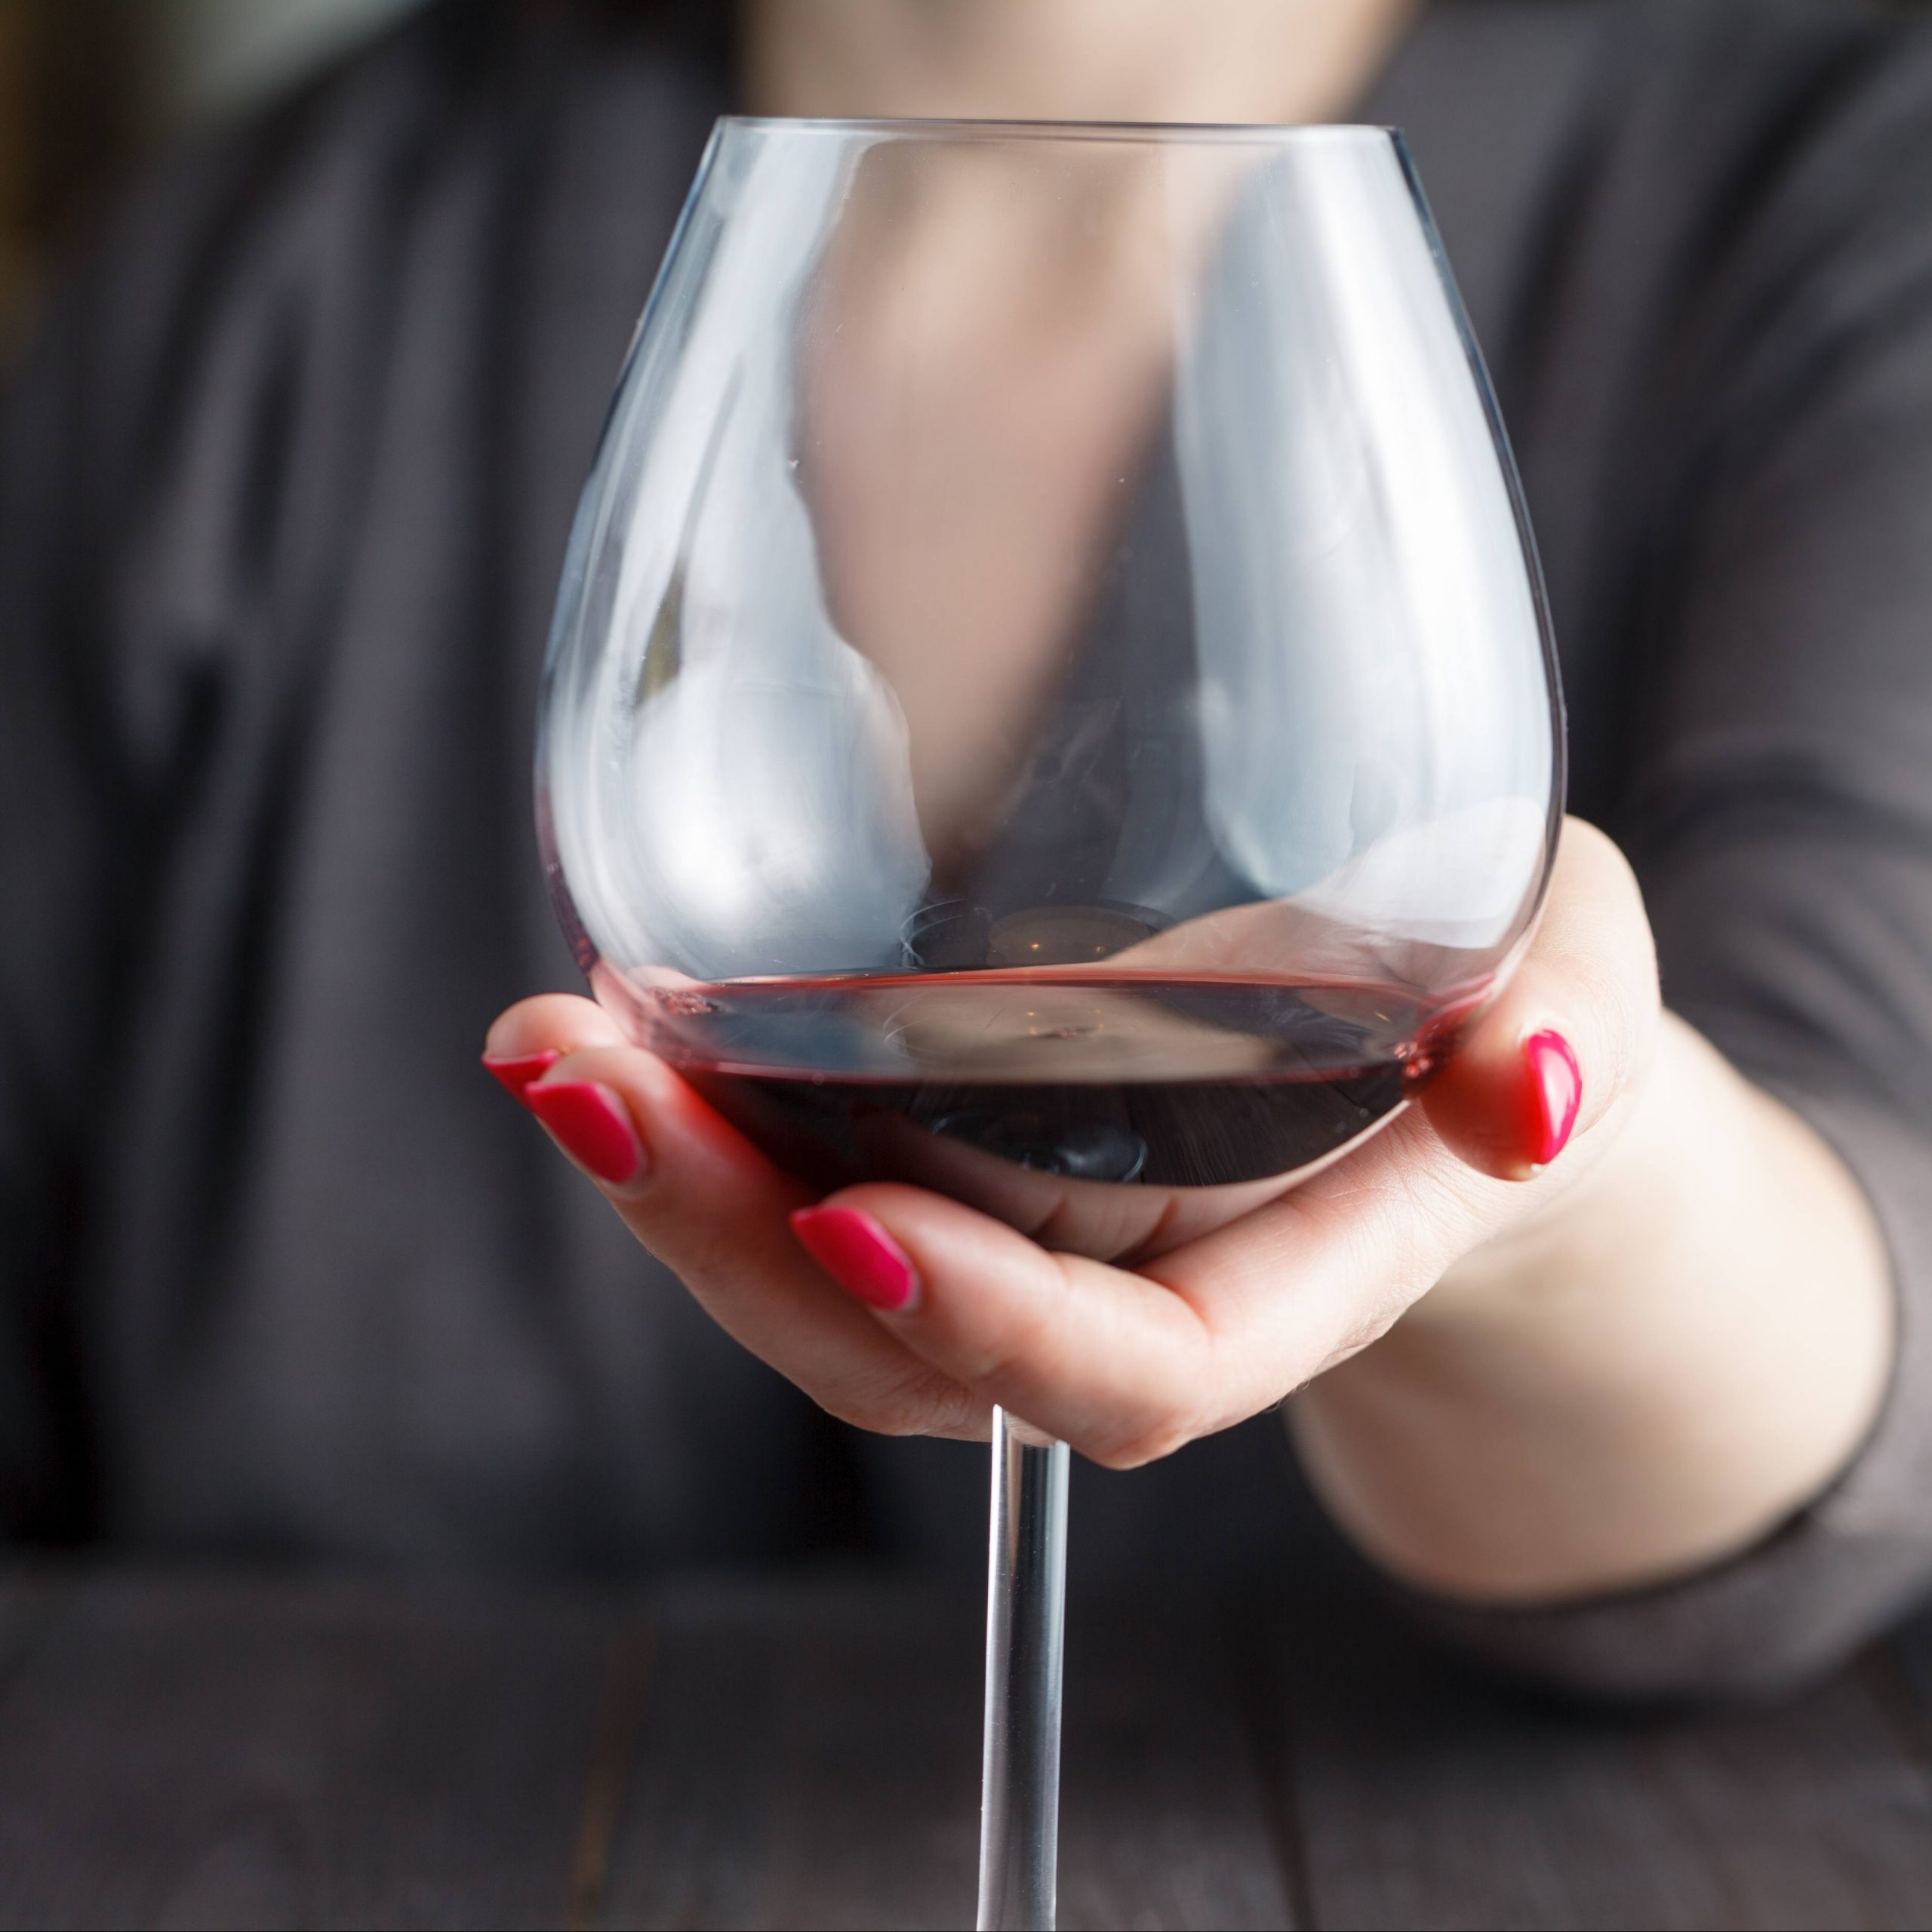 a Caucasian woman in a grey sweater sitting at a table, wearing red fingernail polish and holding a glass of red wine